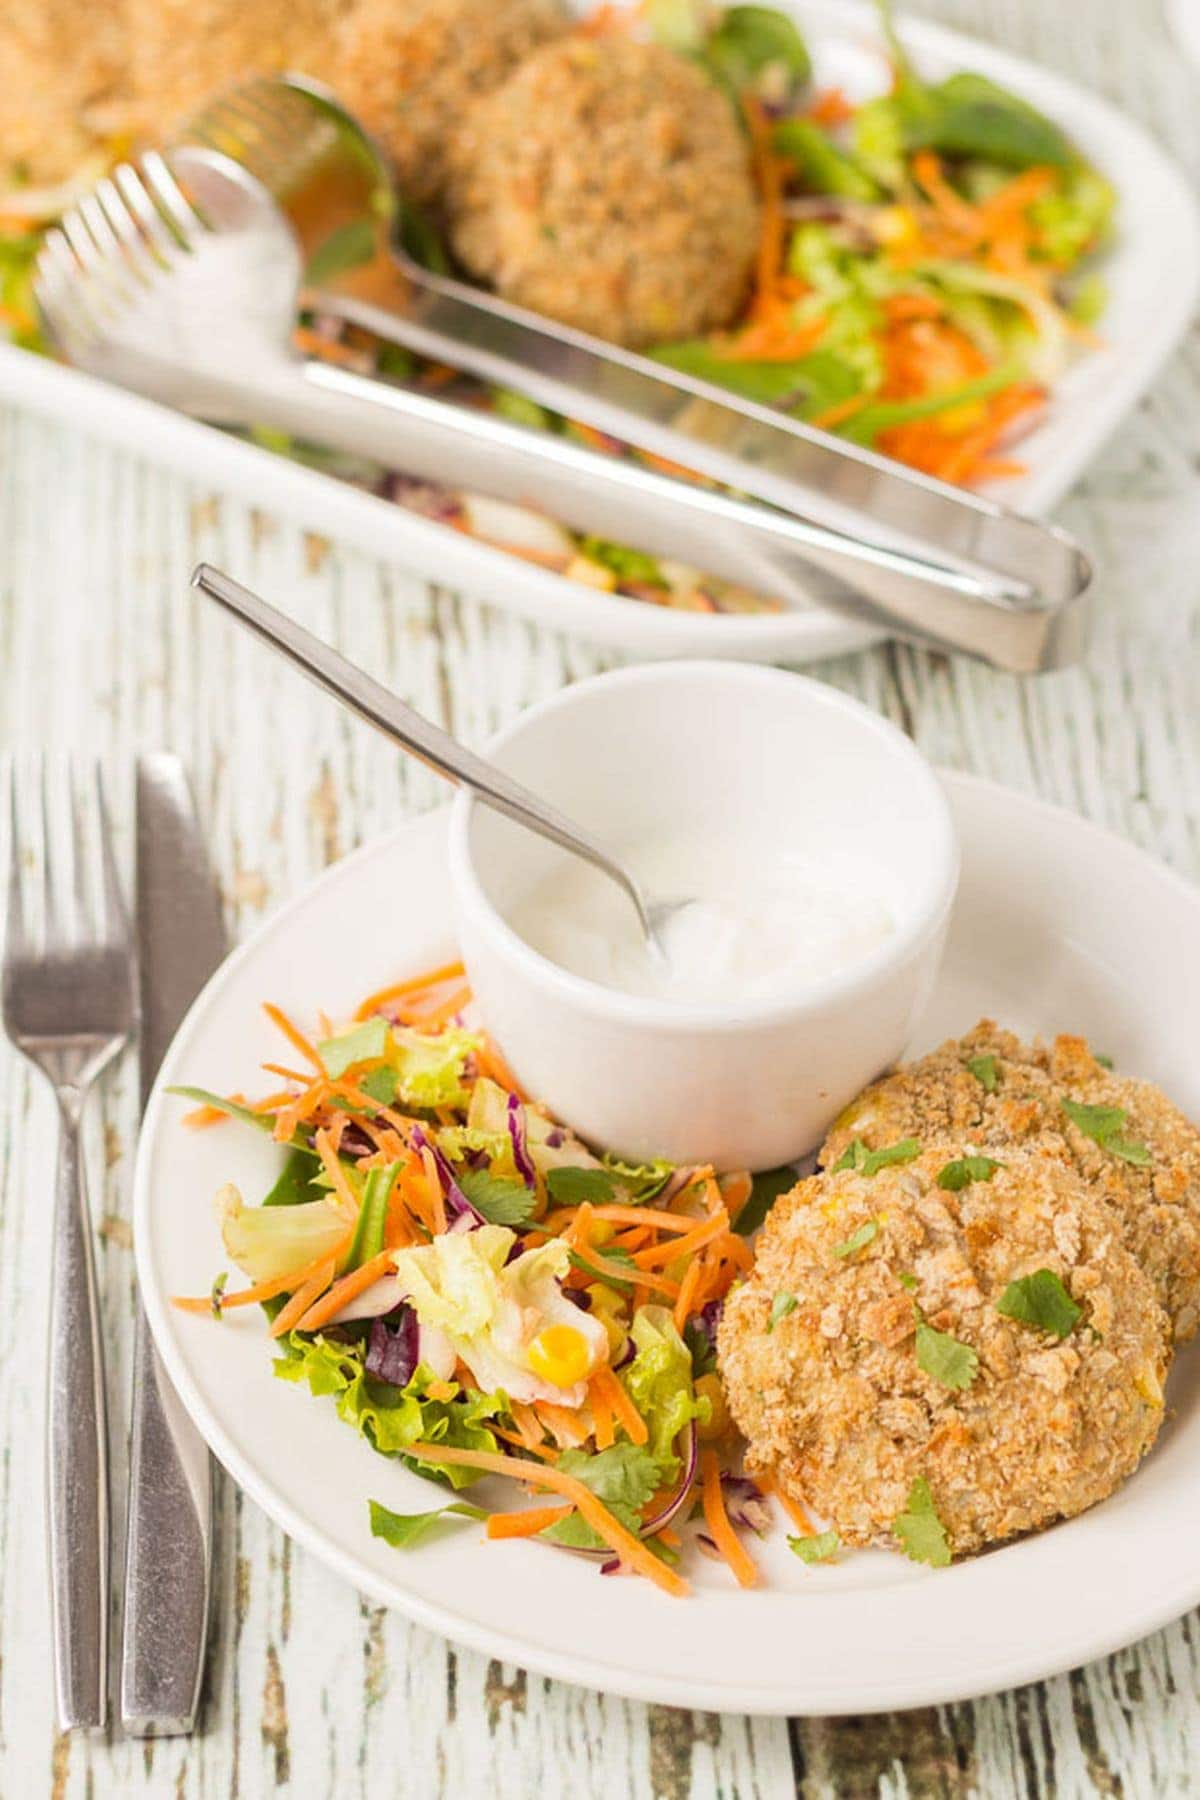 A plate with two oven baked tuna sweetcorn cakes and salad on with a ramekin of mayonnaise. Rest of the cakes in the background on a serving platter with serving tongs on.